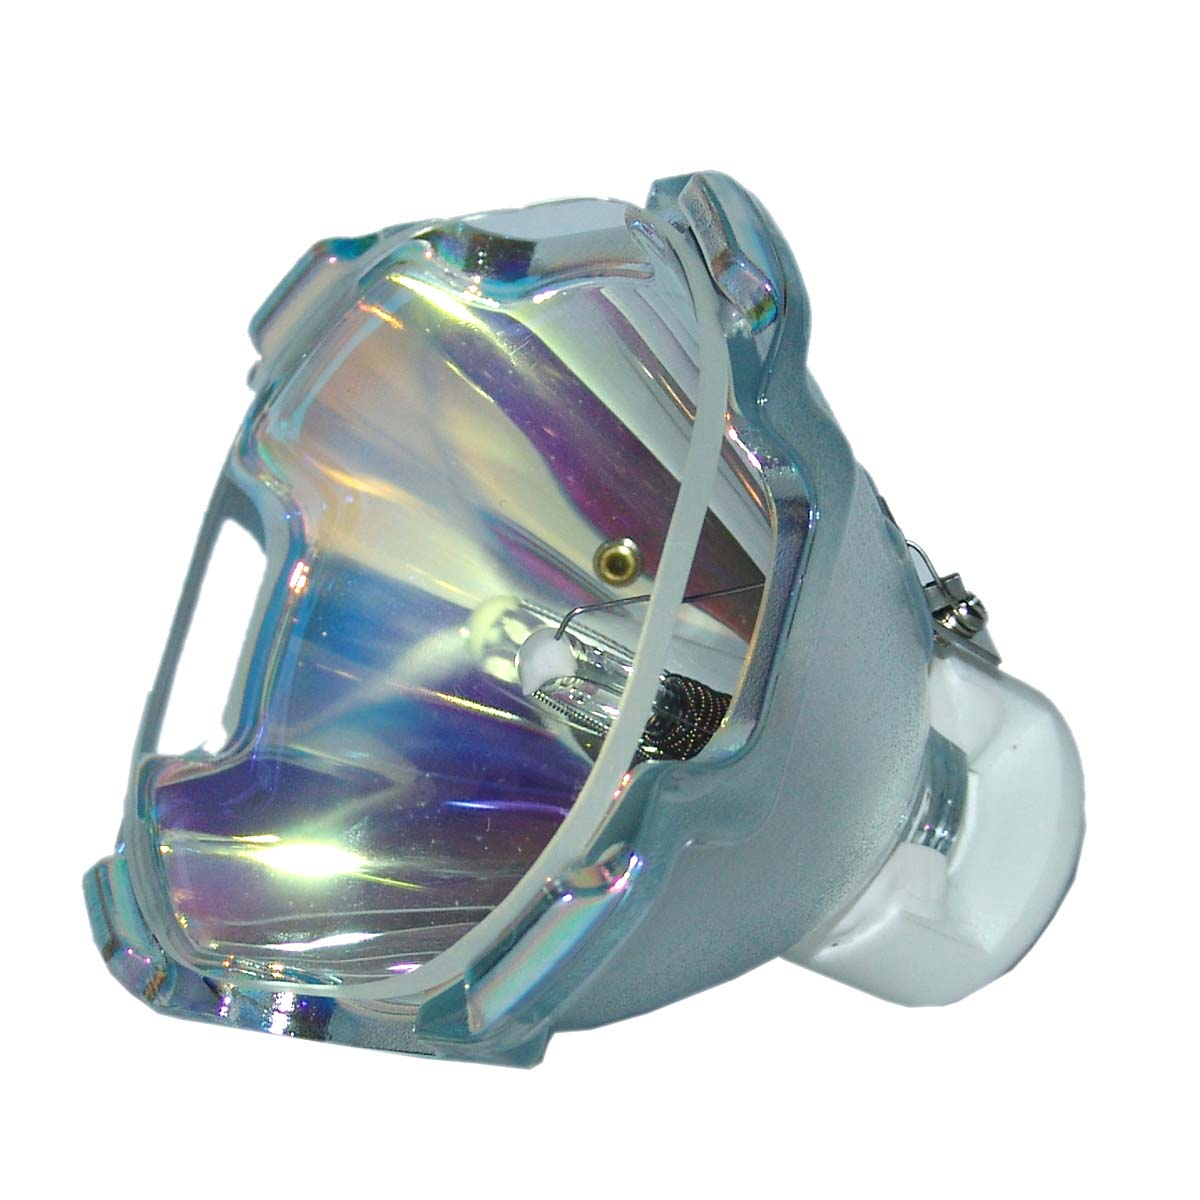 Lutema Economy for Yamaha DPX-1000 Projector Lamp (Bulb Only) - image 5 of 5